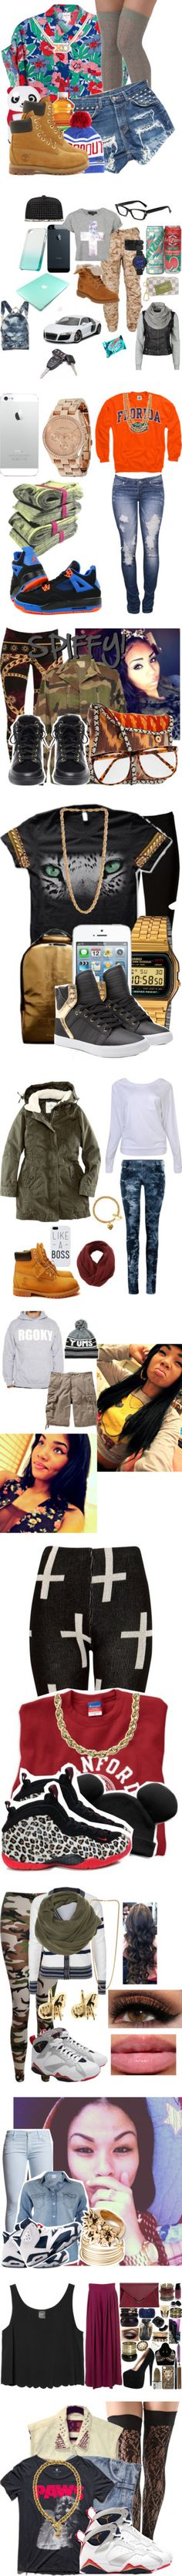 """""""Street Style (Dope Part. 4)."""" by mrkr-lawson ❤ liked on Polyvore"""